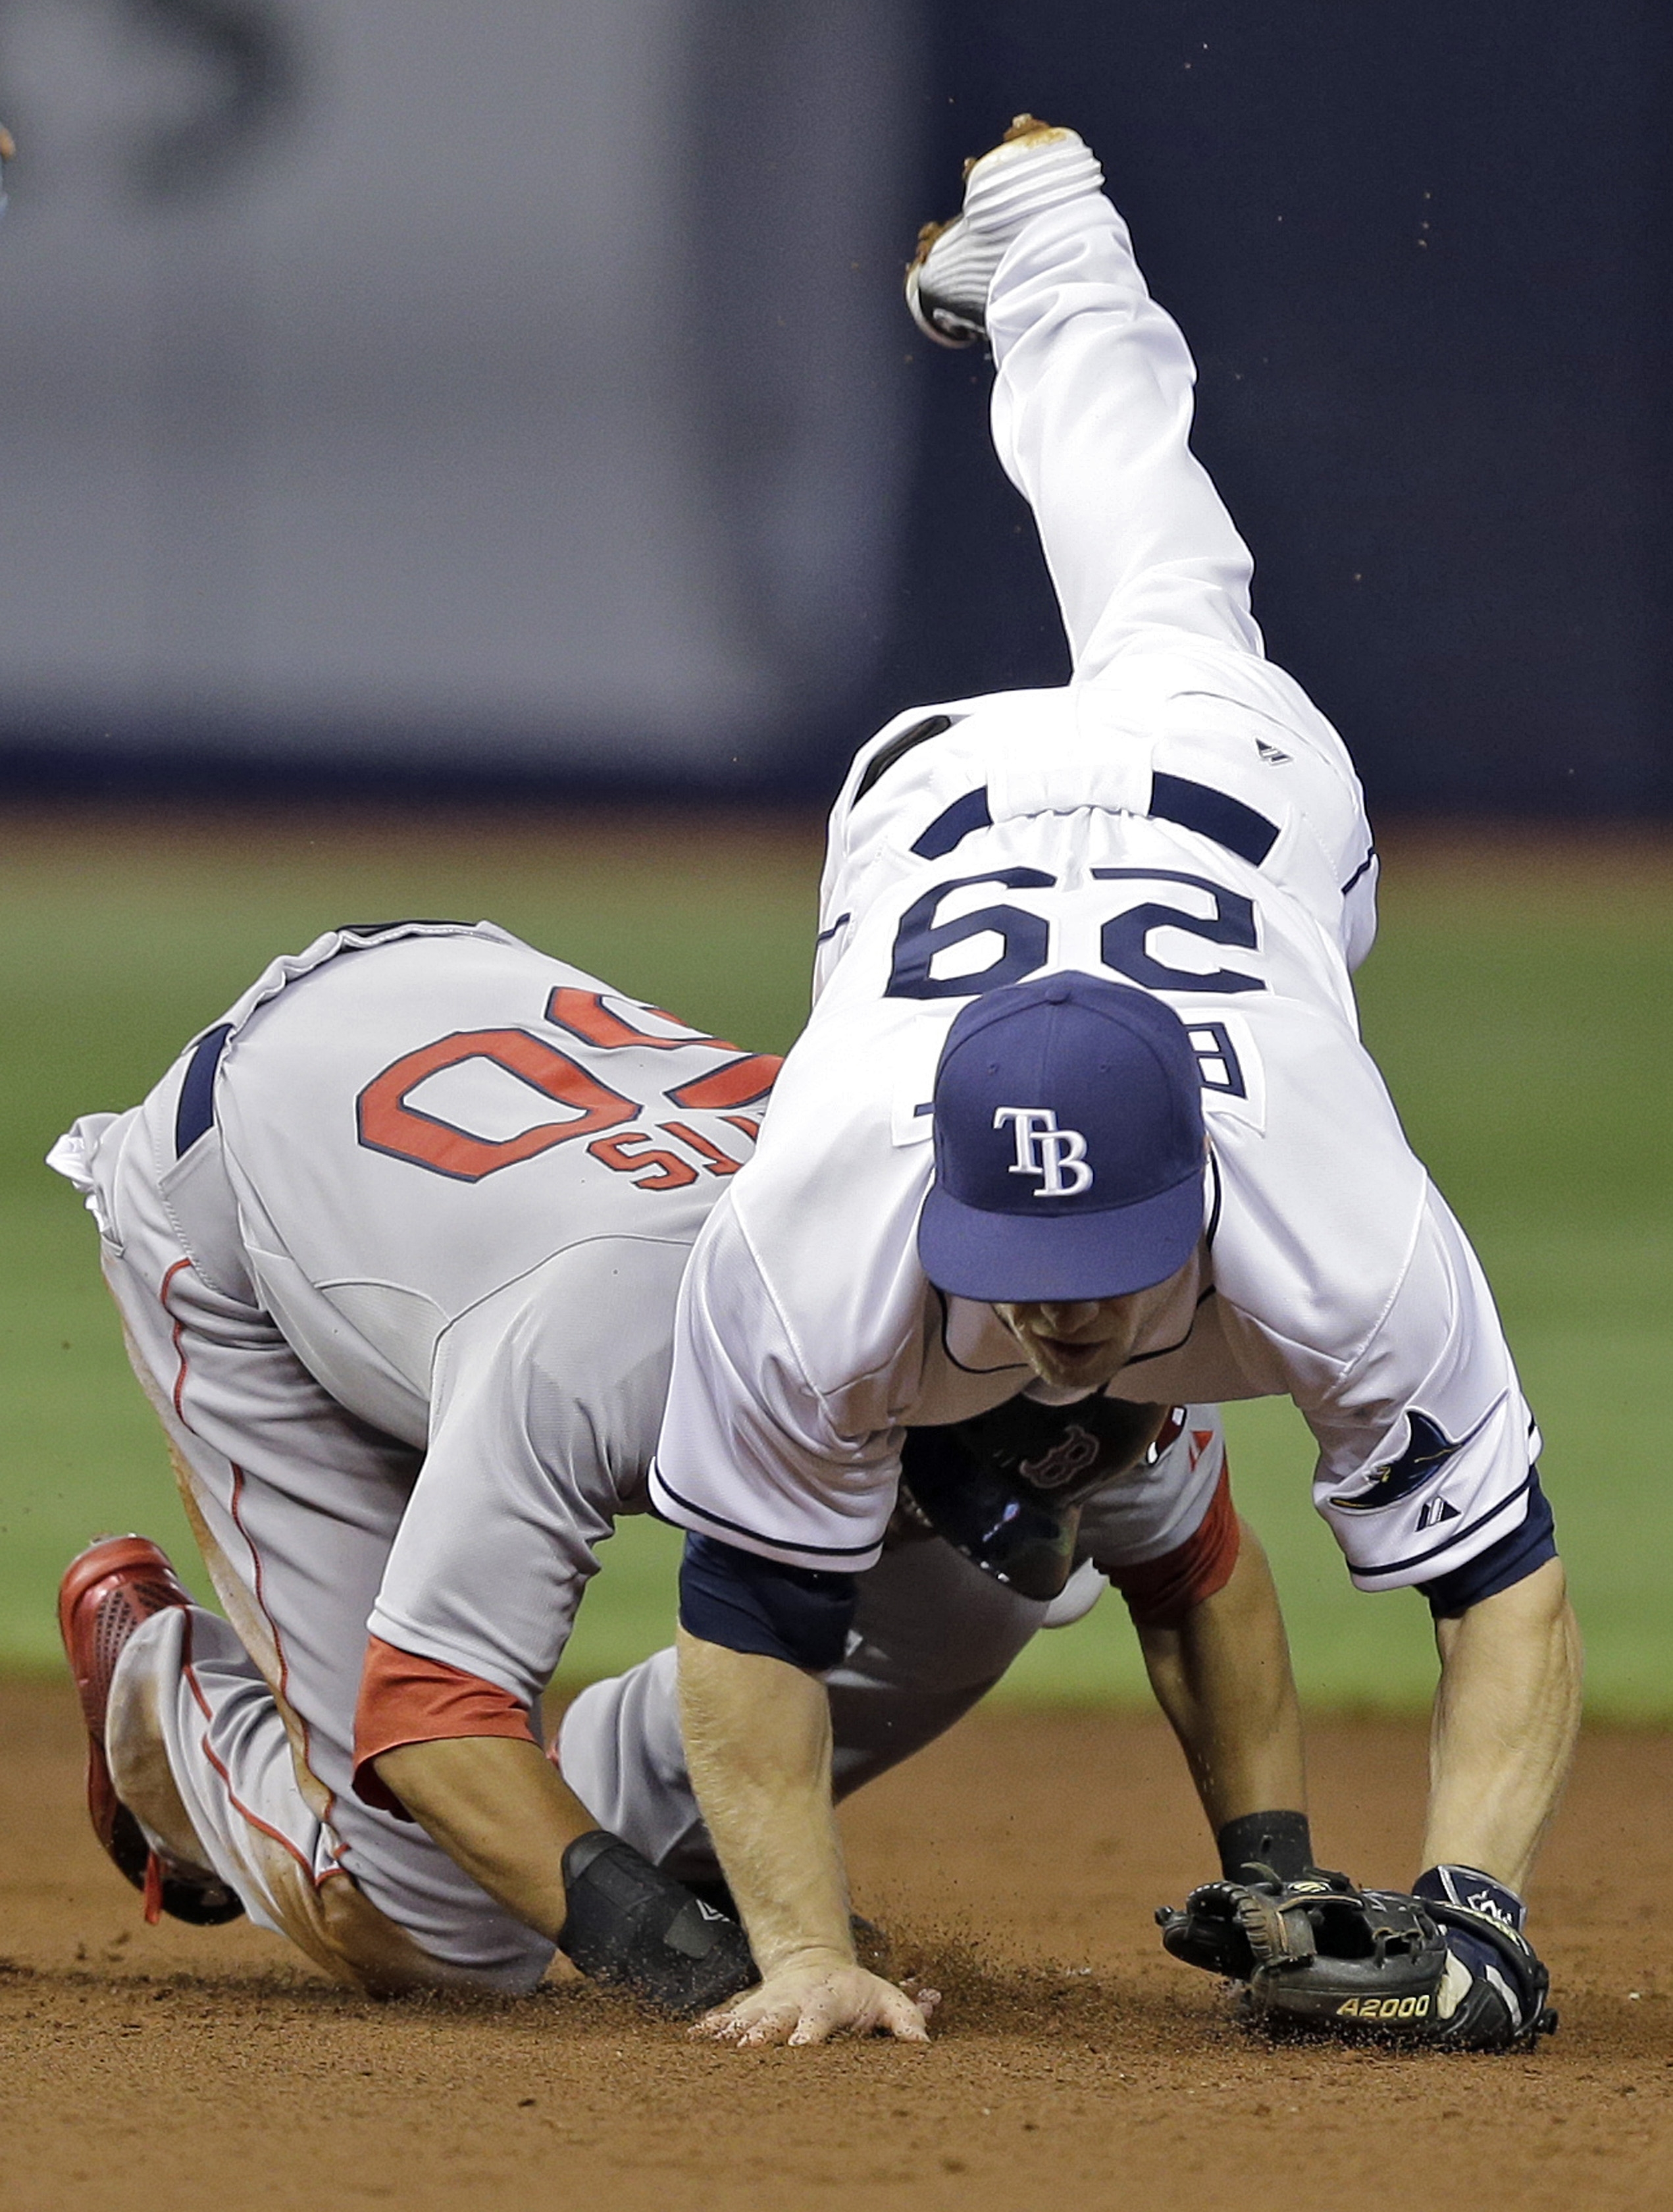 Boston Red Sox's Mookie Betts (50) upends Tampa Bay Rays second baseman Ryan Brett on a fielder's choice by Dustin Pedroia during the third inning of a baseball game Tuesday, April 21, 2015, in St. Petersburg, Fla. A wild throw by Brett allowed Ryan Hanig